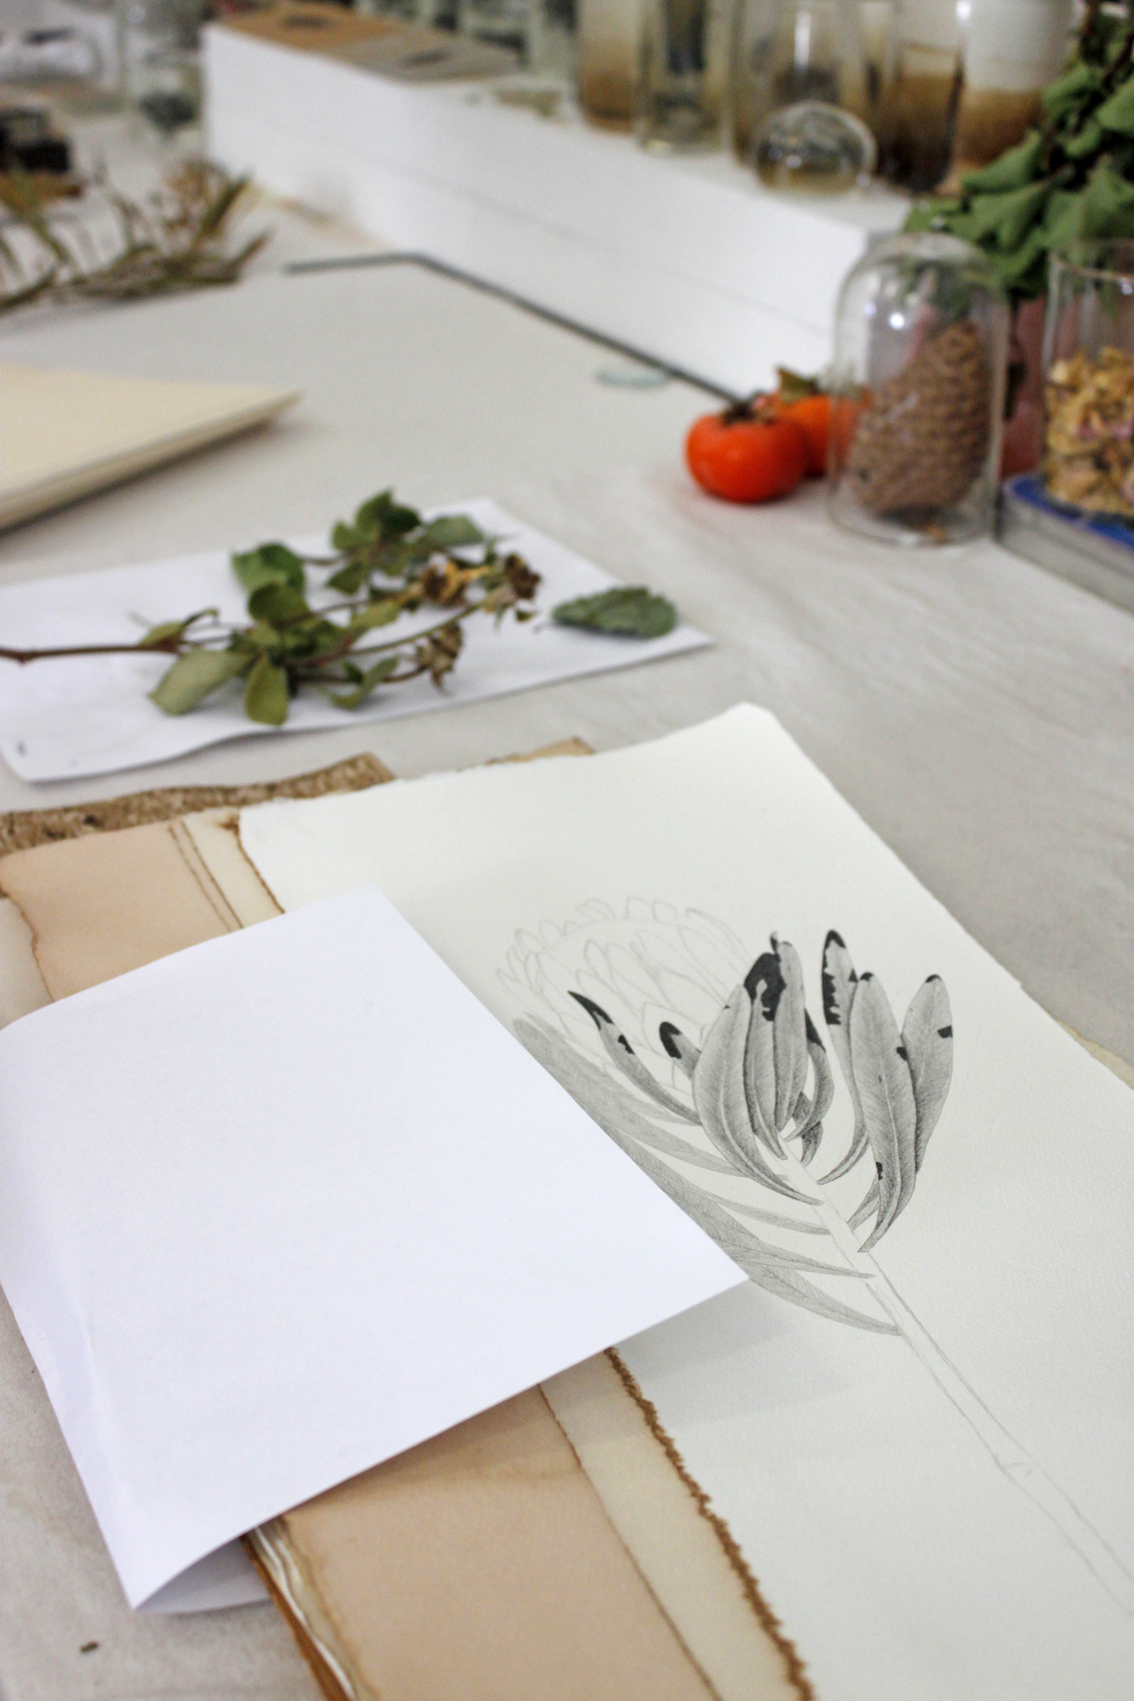 One of Emilie's drawings of a Protea.